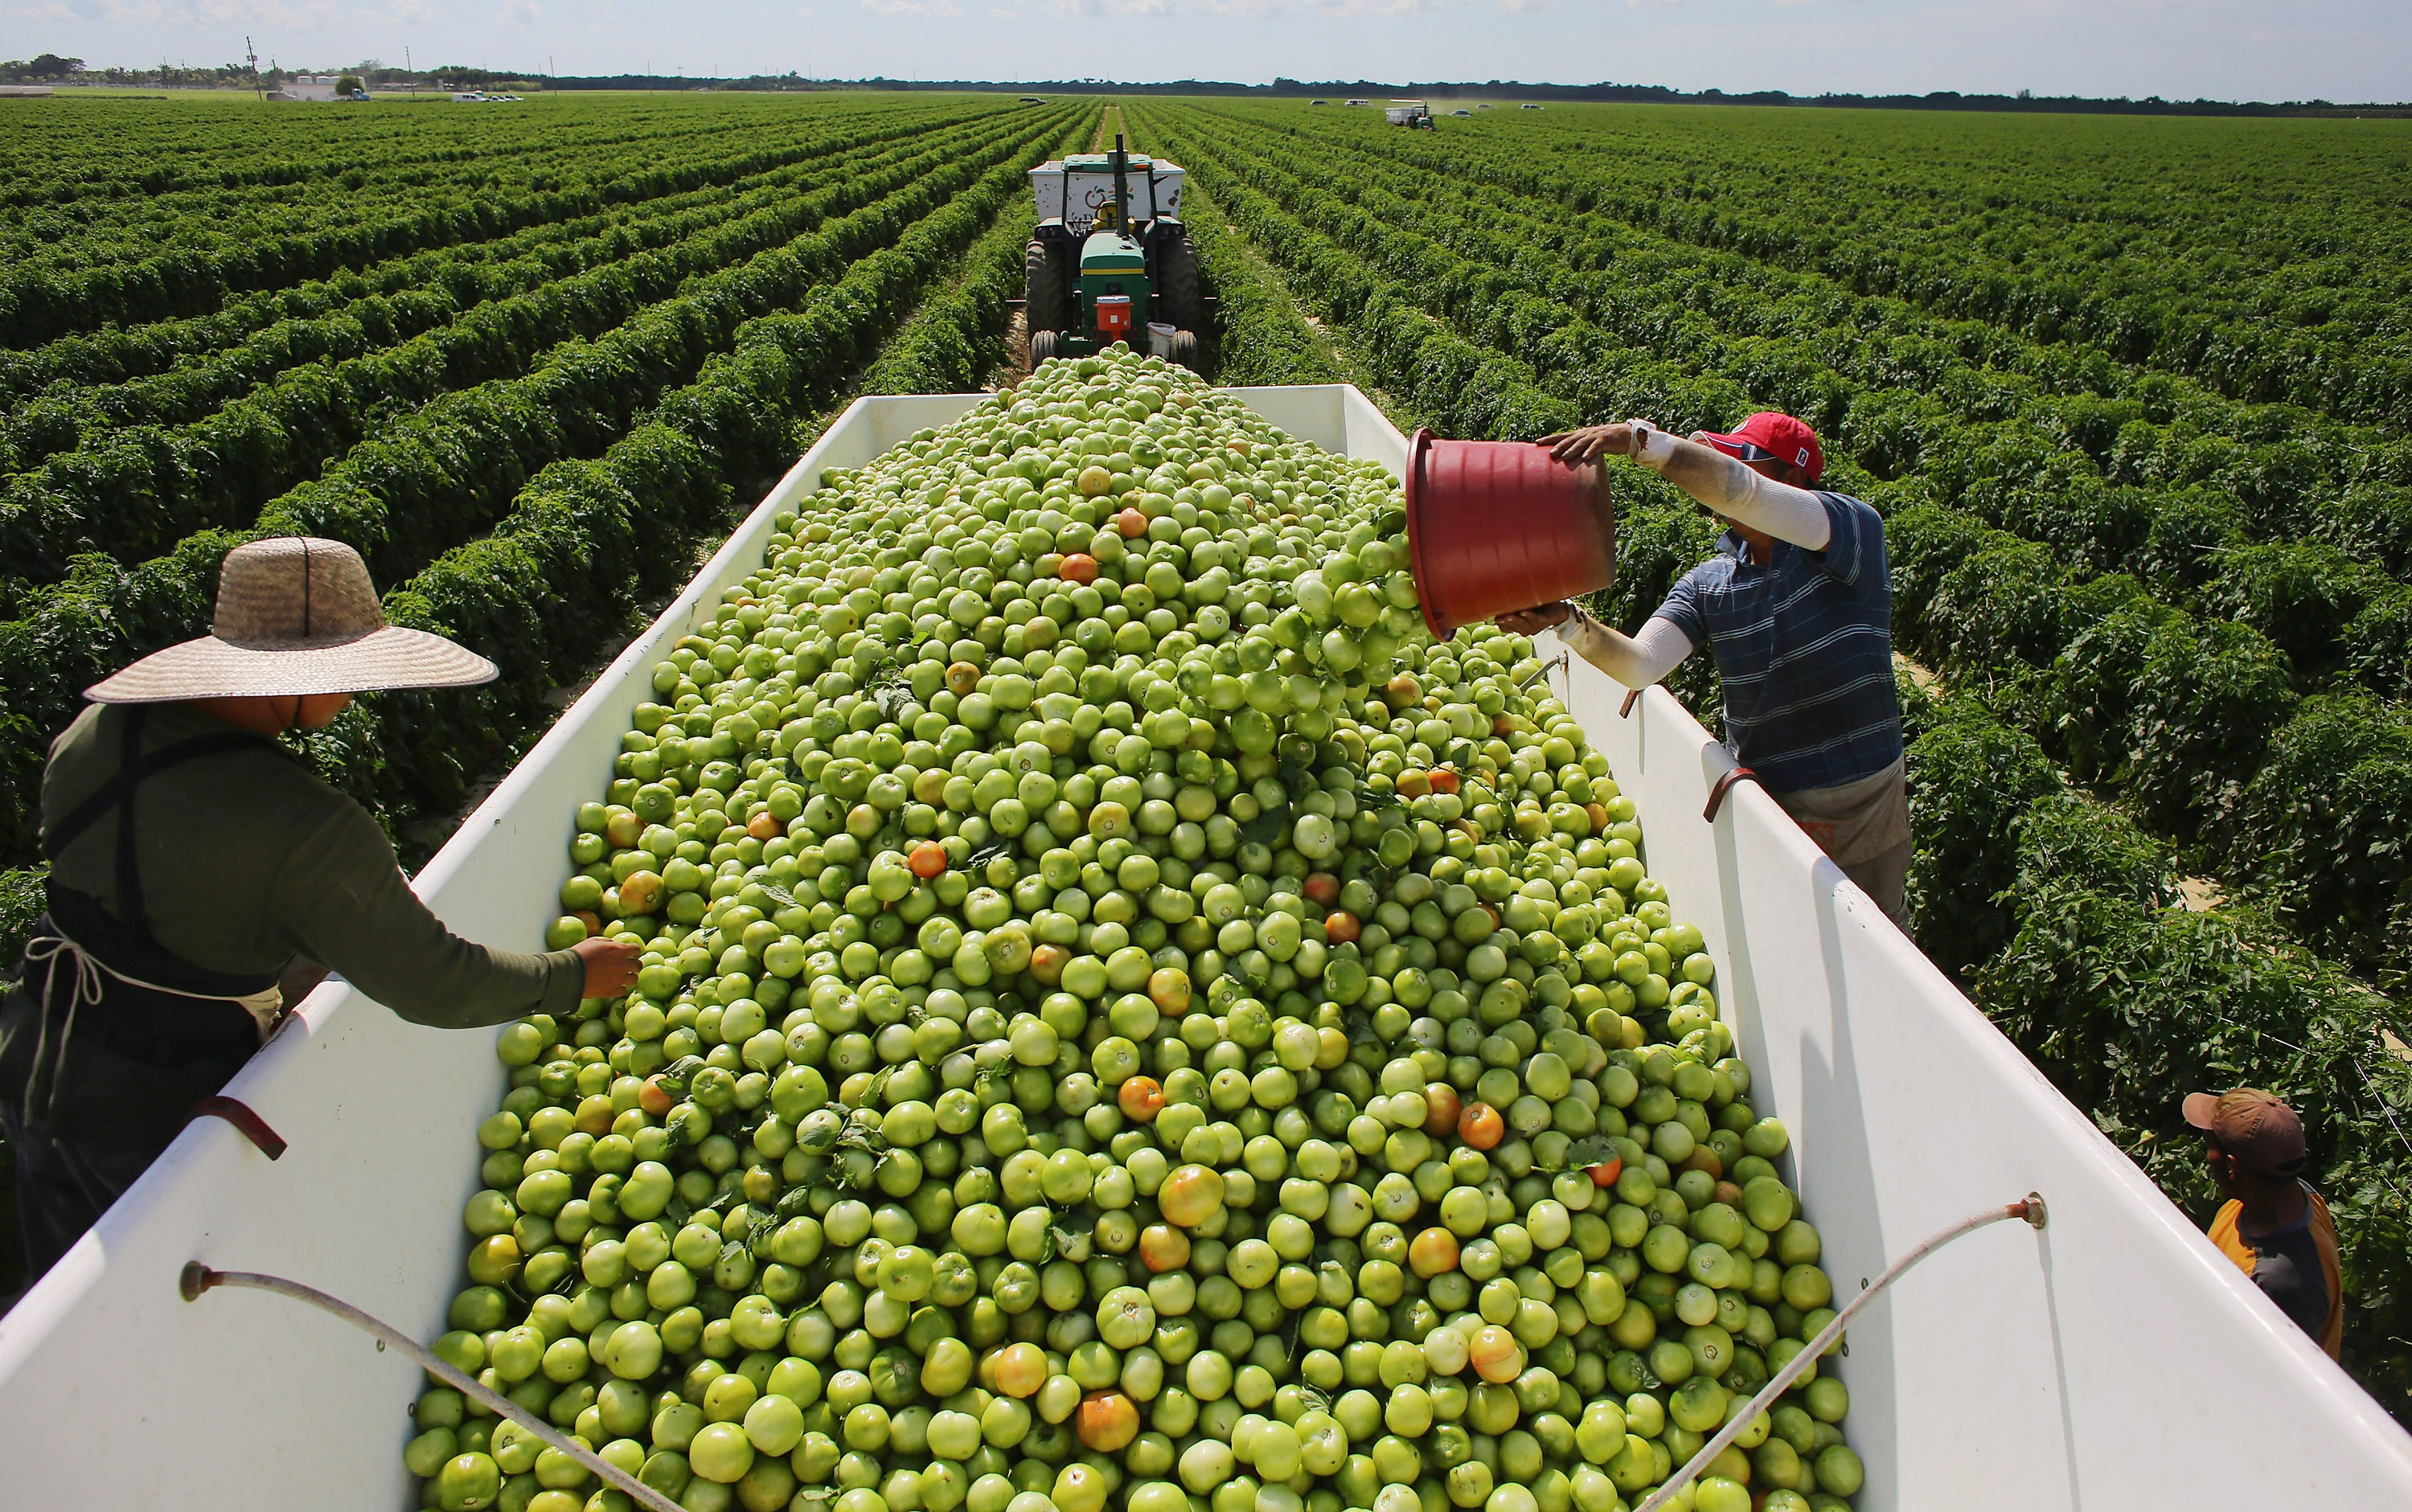 Workers fill a trailer with tomatoes, in Florida, on Feb. 6, 2013.